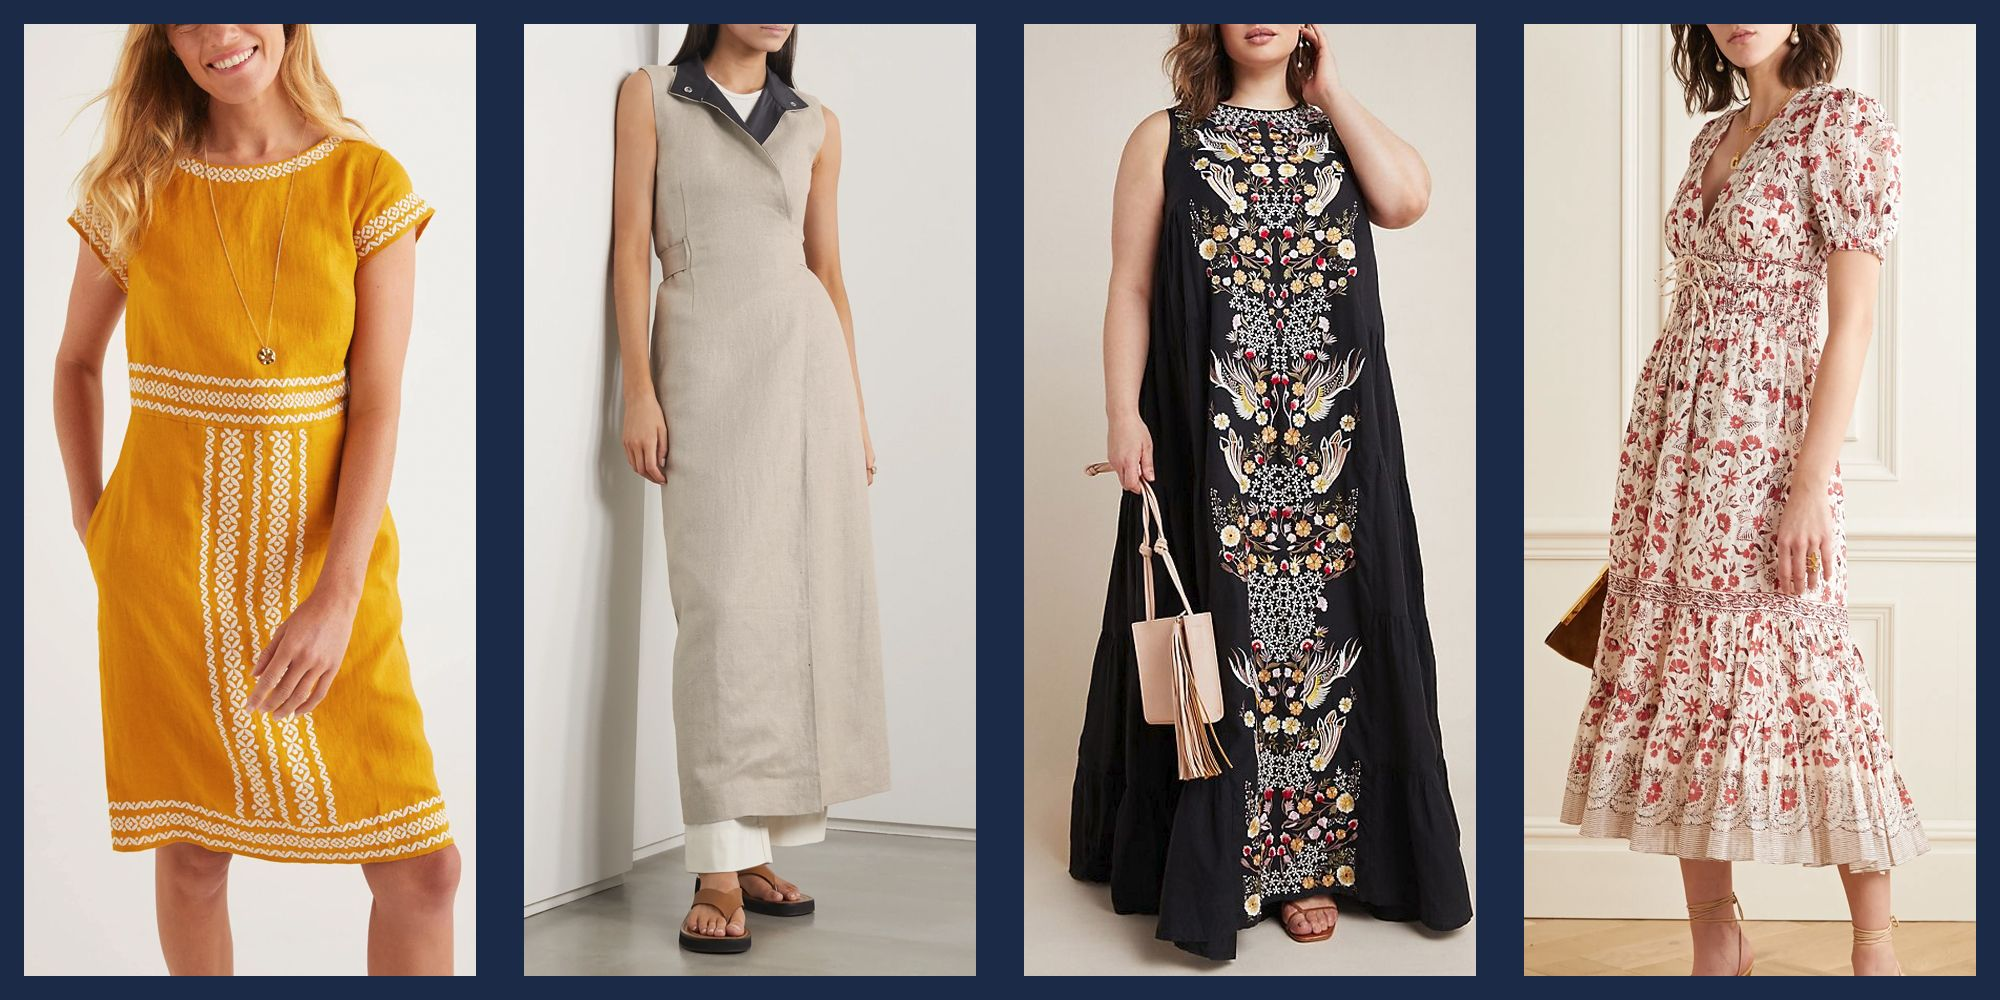 8 Most Stylish Fall Dresses to Wear in 8 - Best Fall Dresses